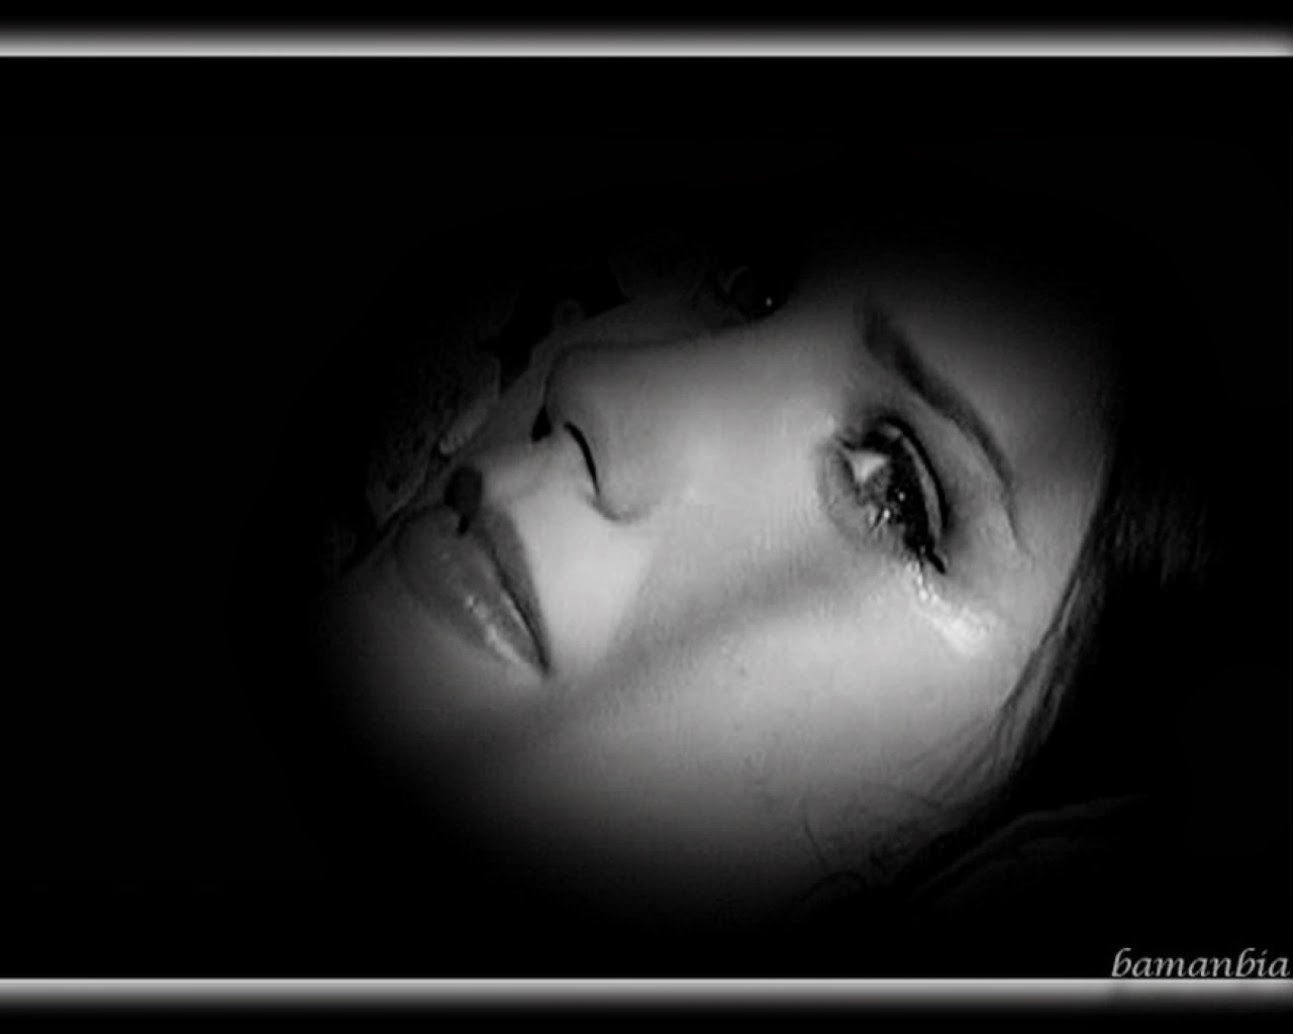 Girl in very saddy mood picture